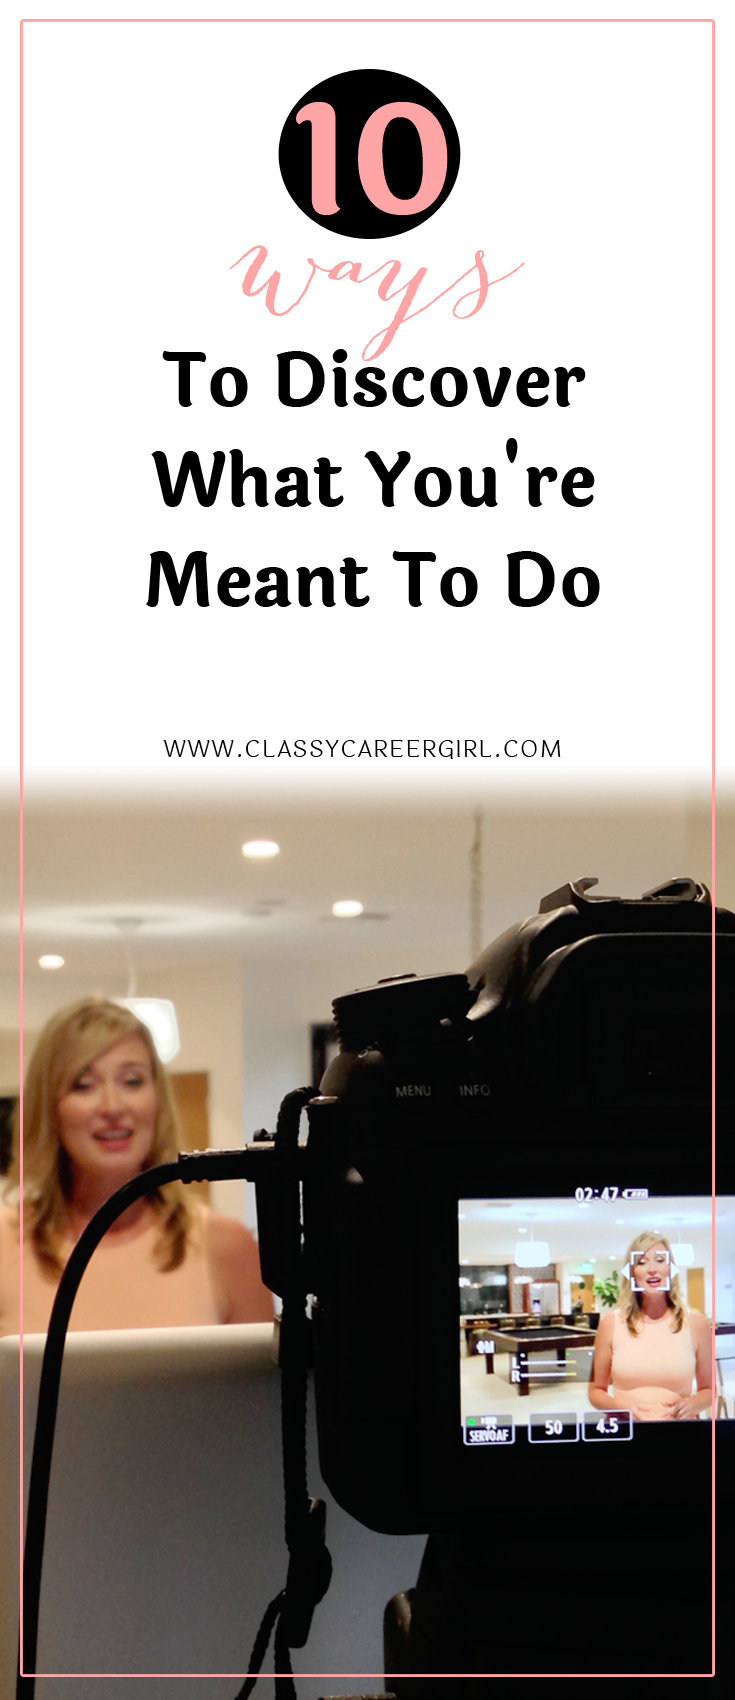 10 Ways To Discover What You're Meant To Do Going to